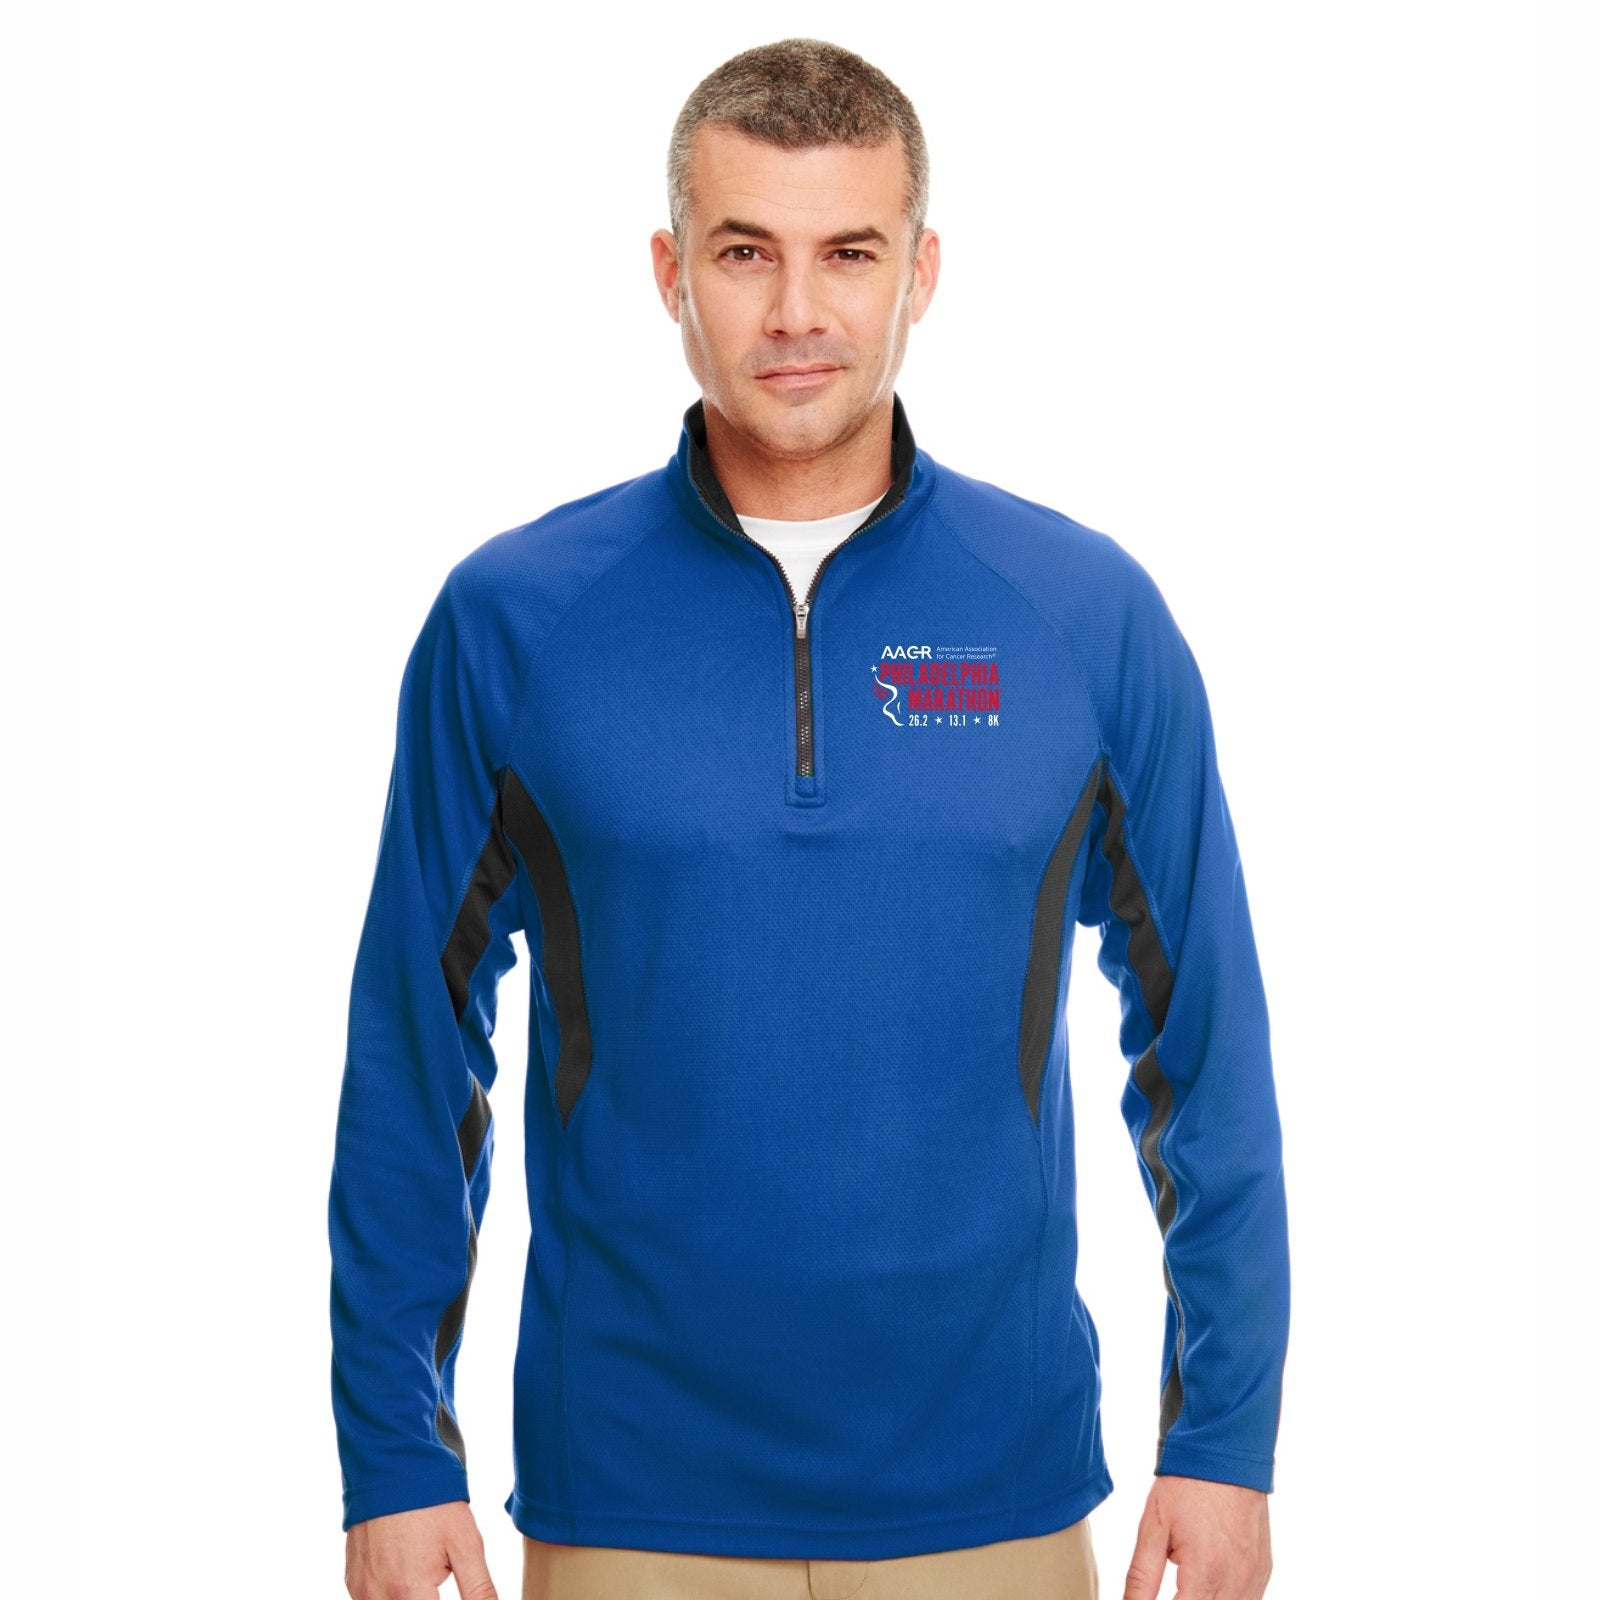 Men's Tech 1/4 Zip -Surf / Flint 'Left Chest Embr. Design' - AACR Philadelphia Marathon